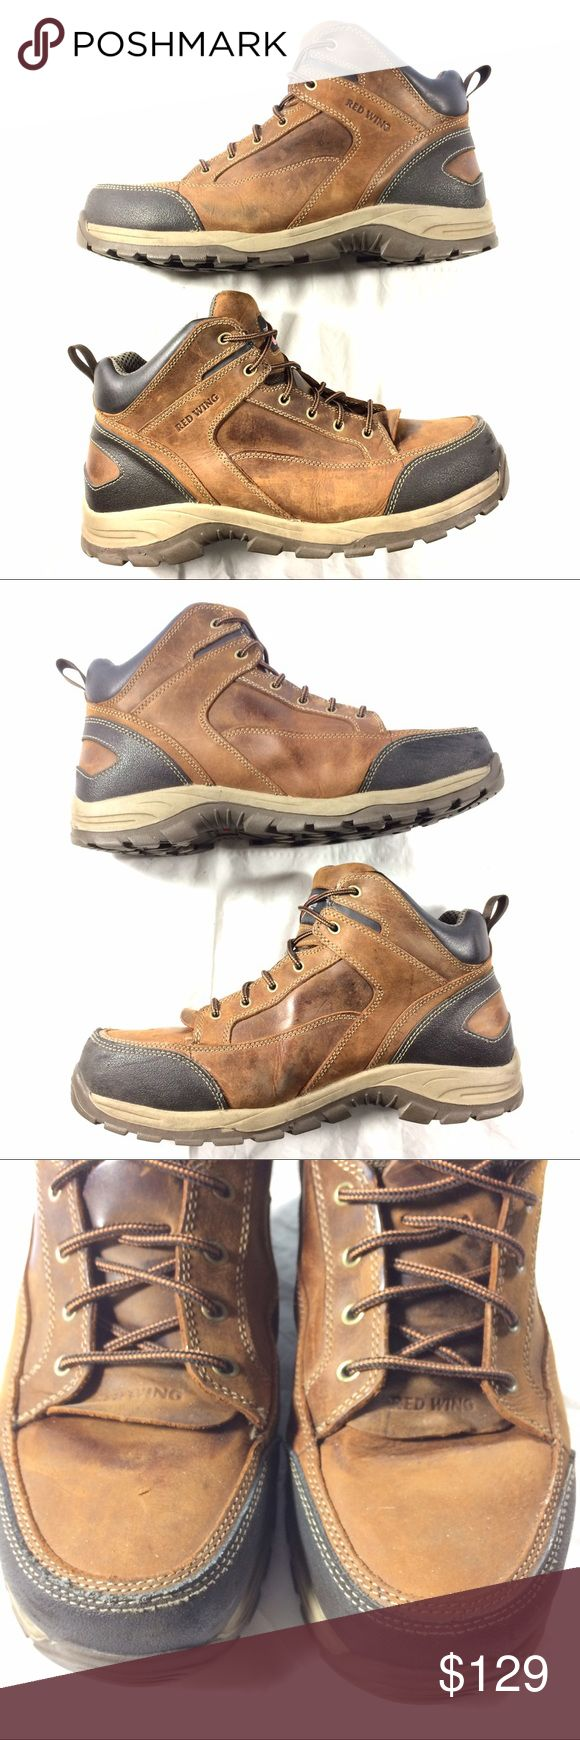 *SOLD on eBay** Tough Steel Toe Work Boots Leather Red Wing Shoes quality preowned great condition inside and out. Steel toes for your husband and/or sons safety. See photos for details. Thank you for referring friends to our closet! Red Wing Shoes Shoes Boots